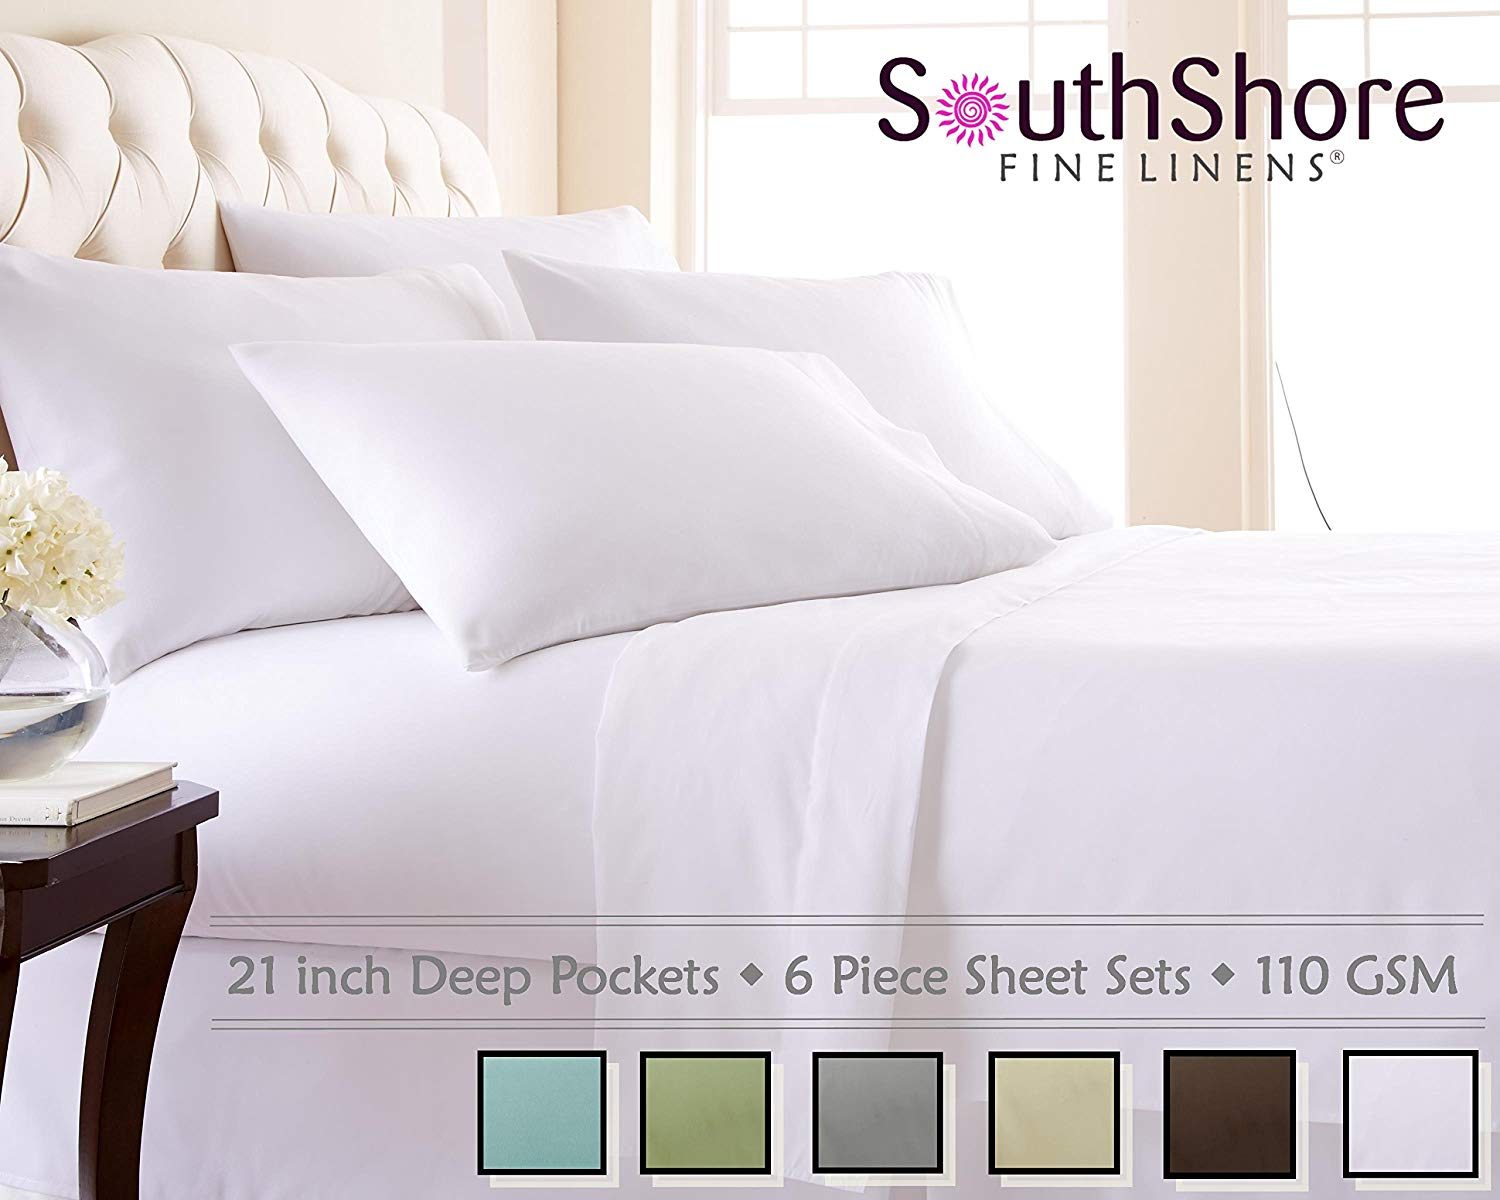 Fullsize Of Microfiber Sheets Pros And Cons